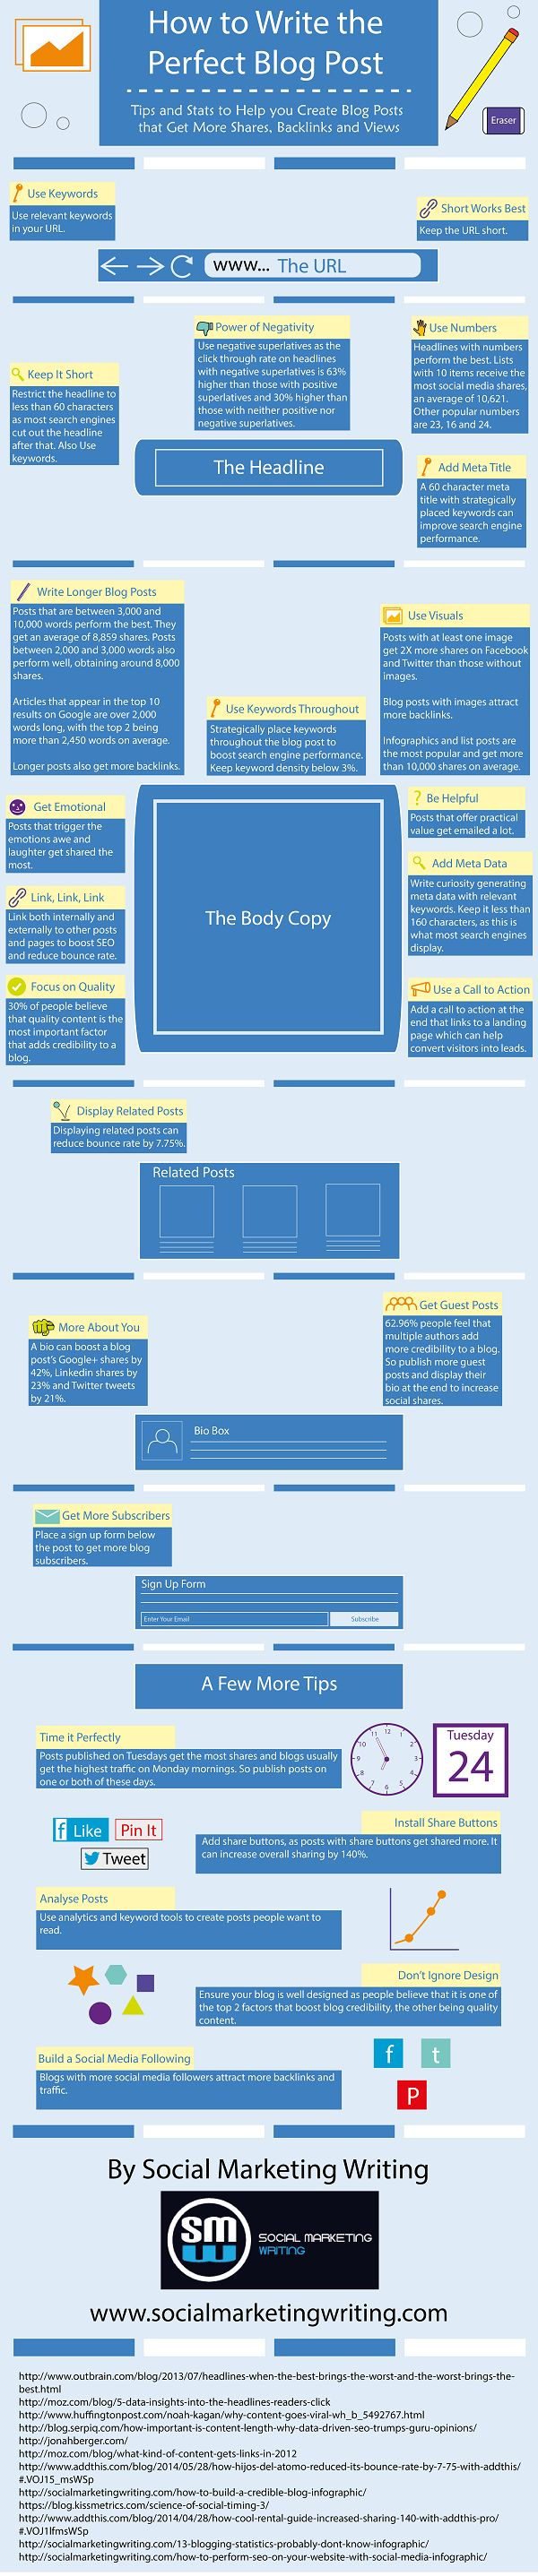 How to Write the Perfect Blog Post [Infographic] @smwriting